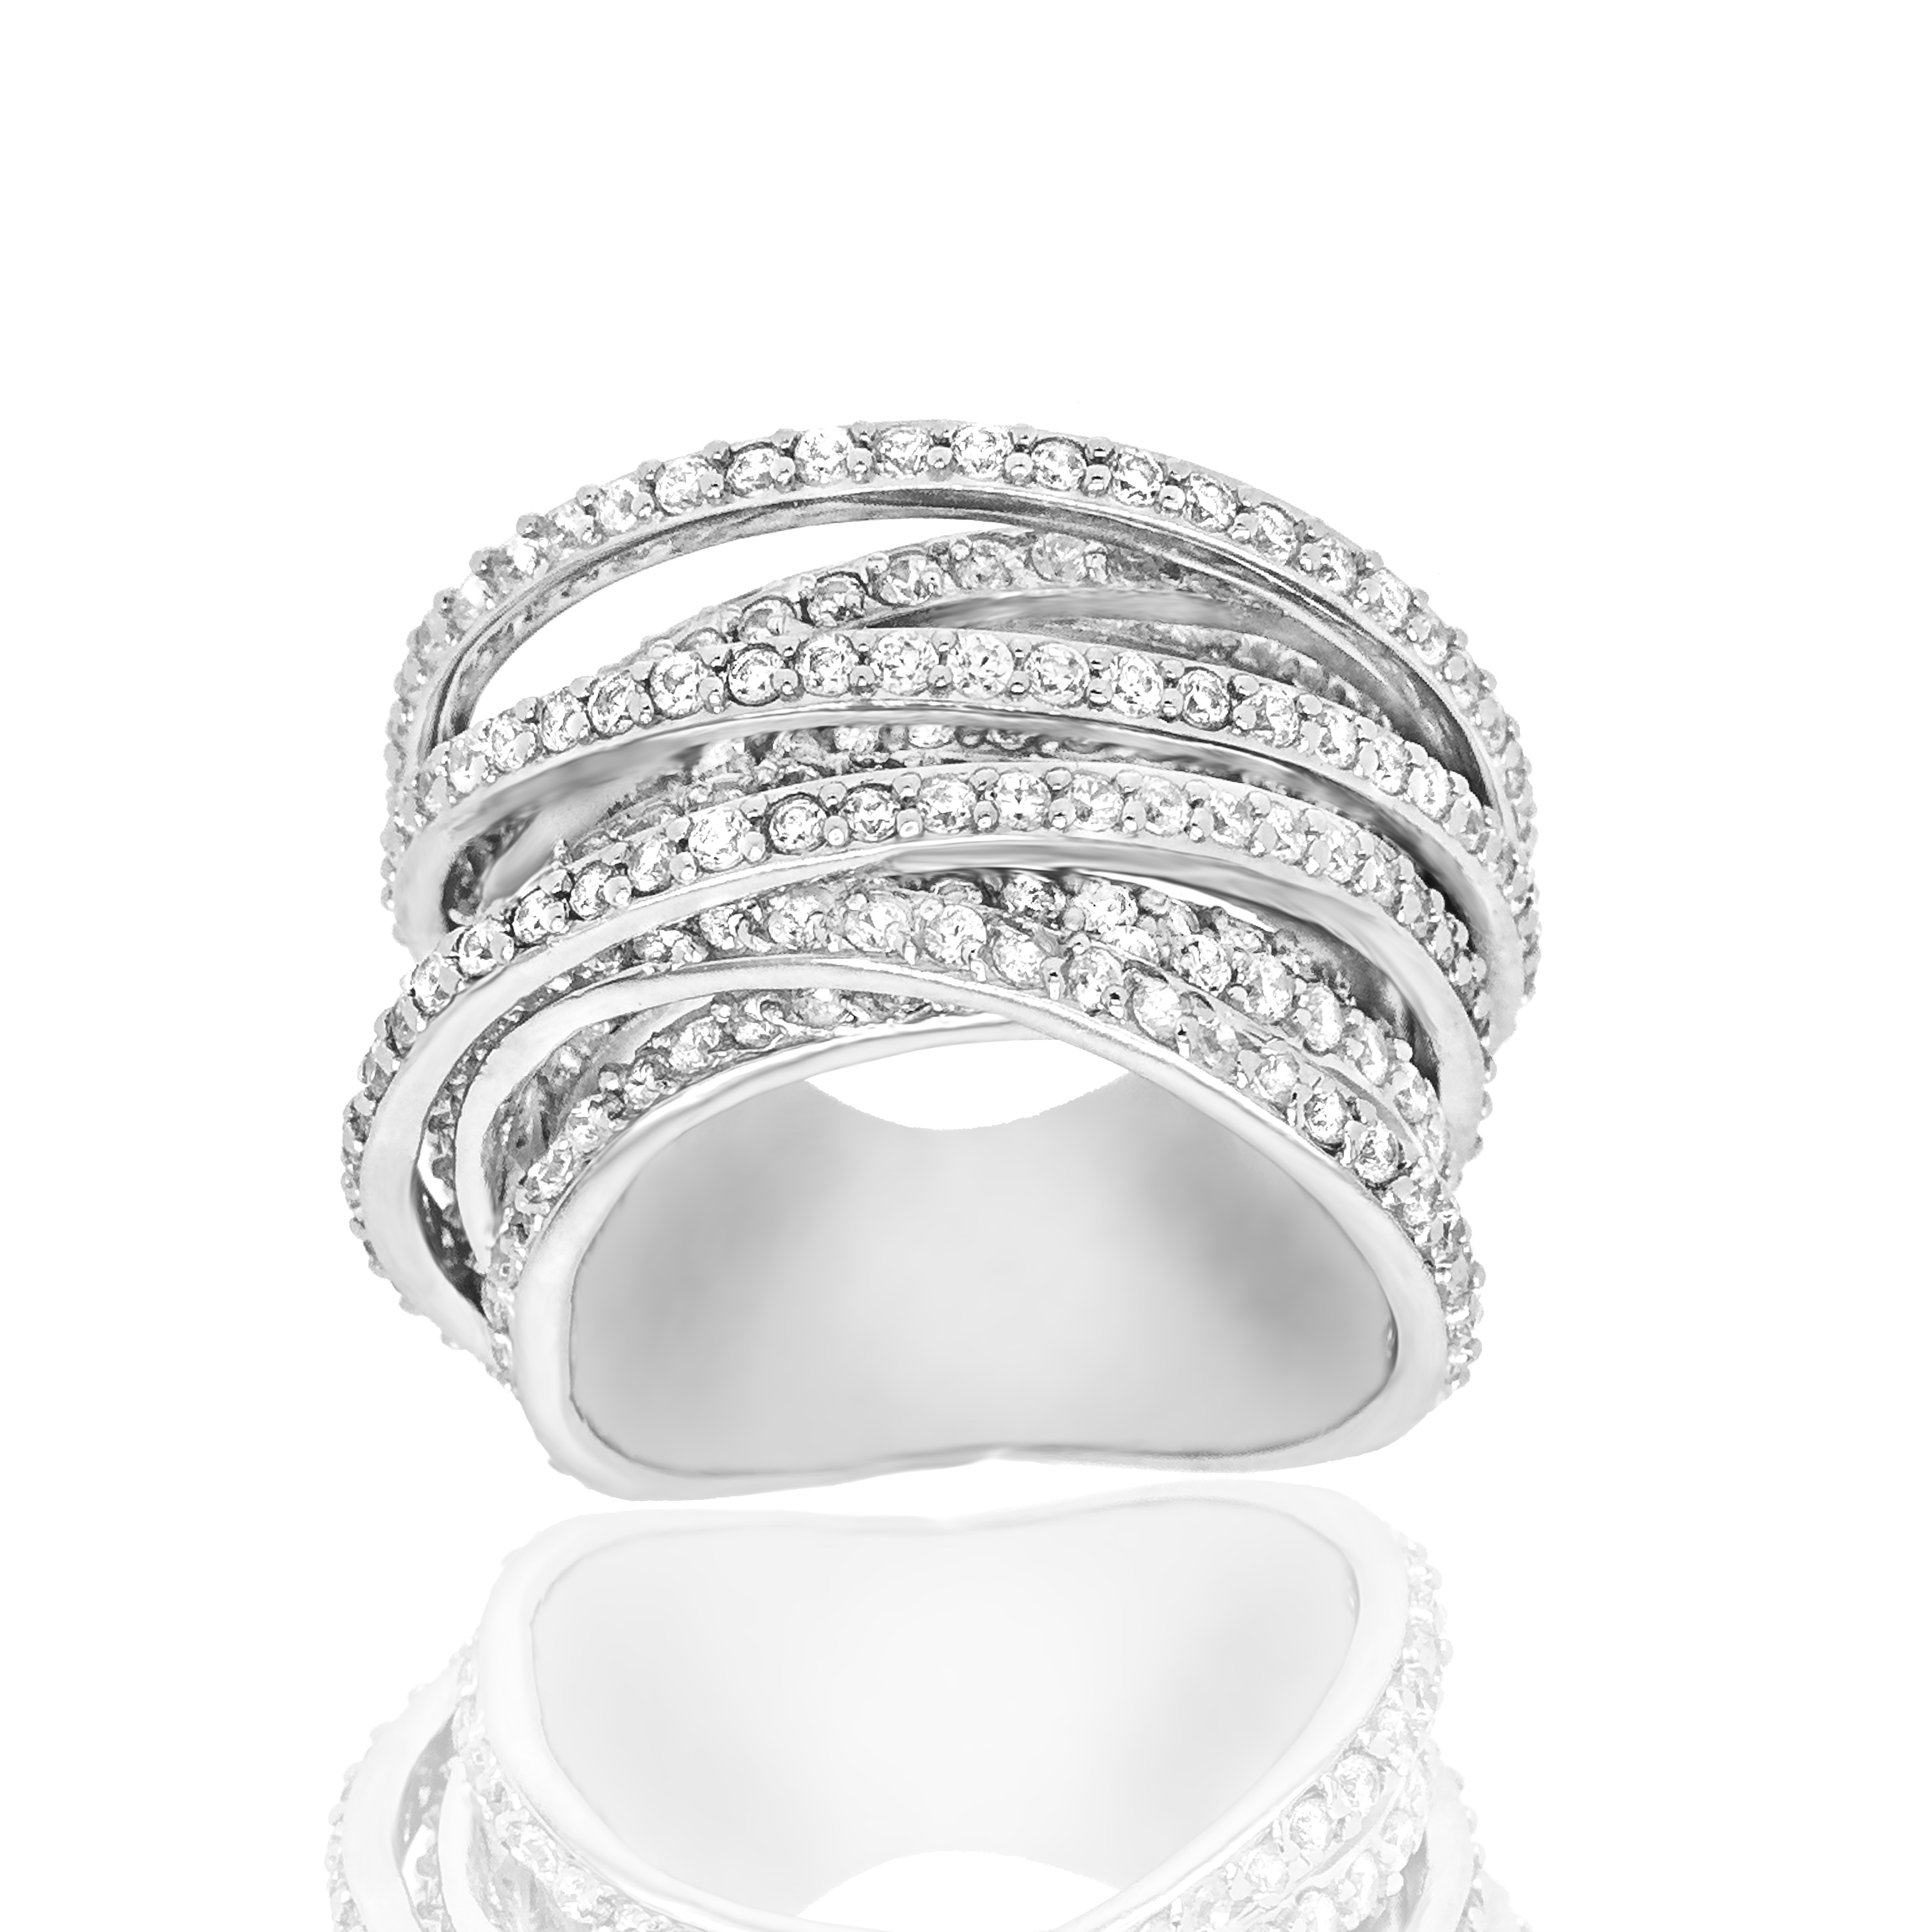 Sz Details about  /925 Sterling Silver Round Pave Black and White Diamond Criss Cross Ring 9